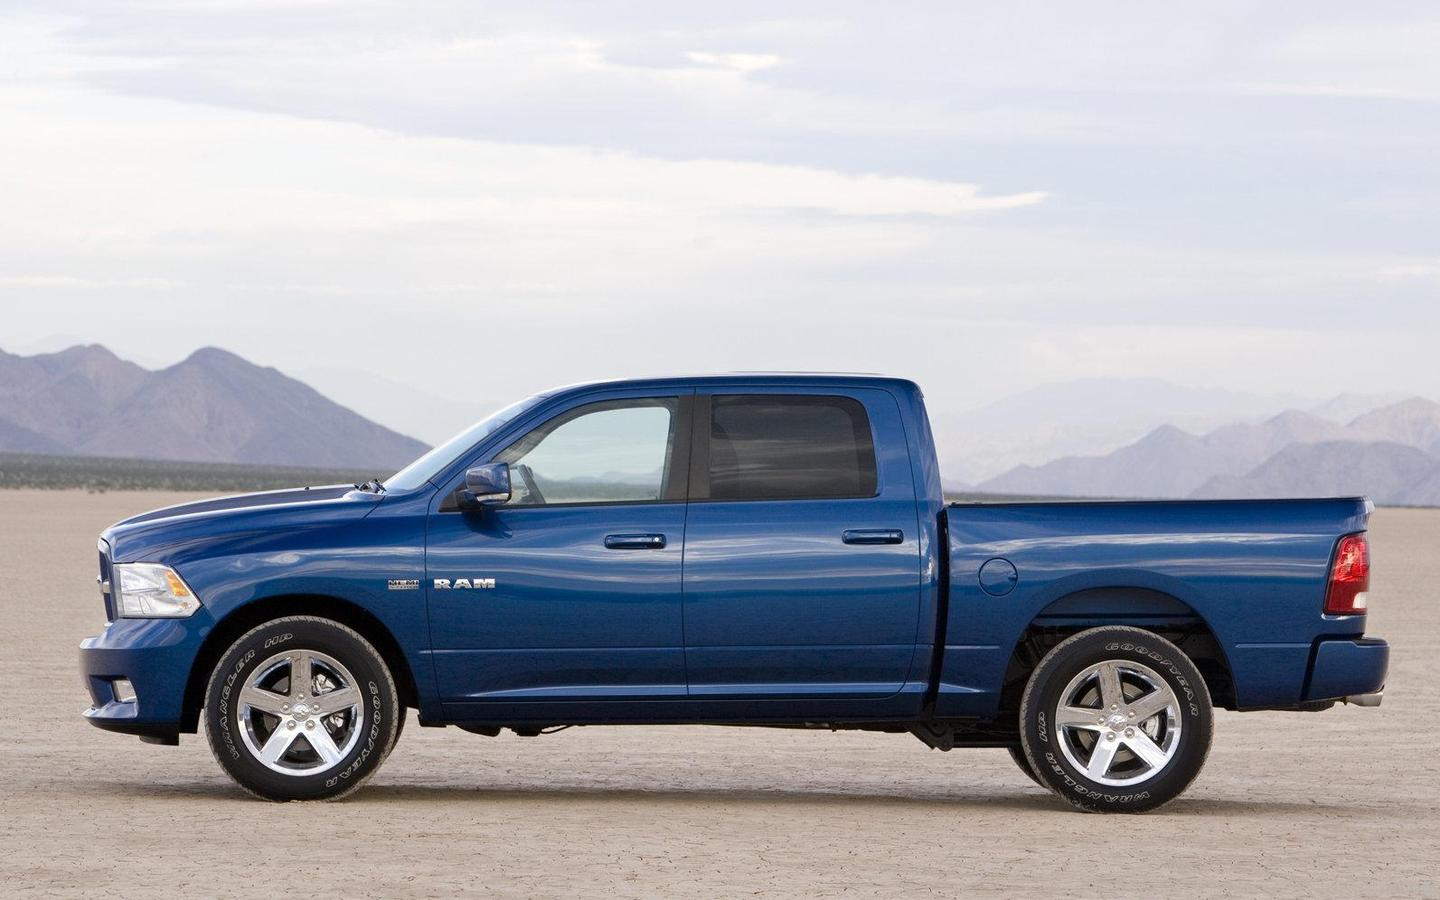 Dodge Ram 1500 Sport 2009 1600×1200 Wallpaper 08